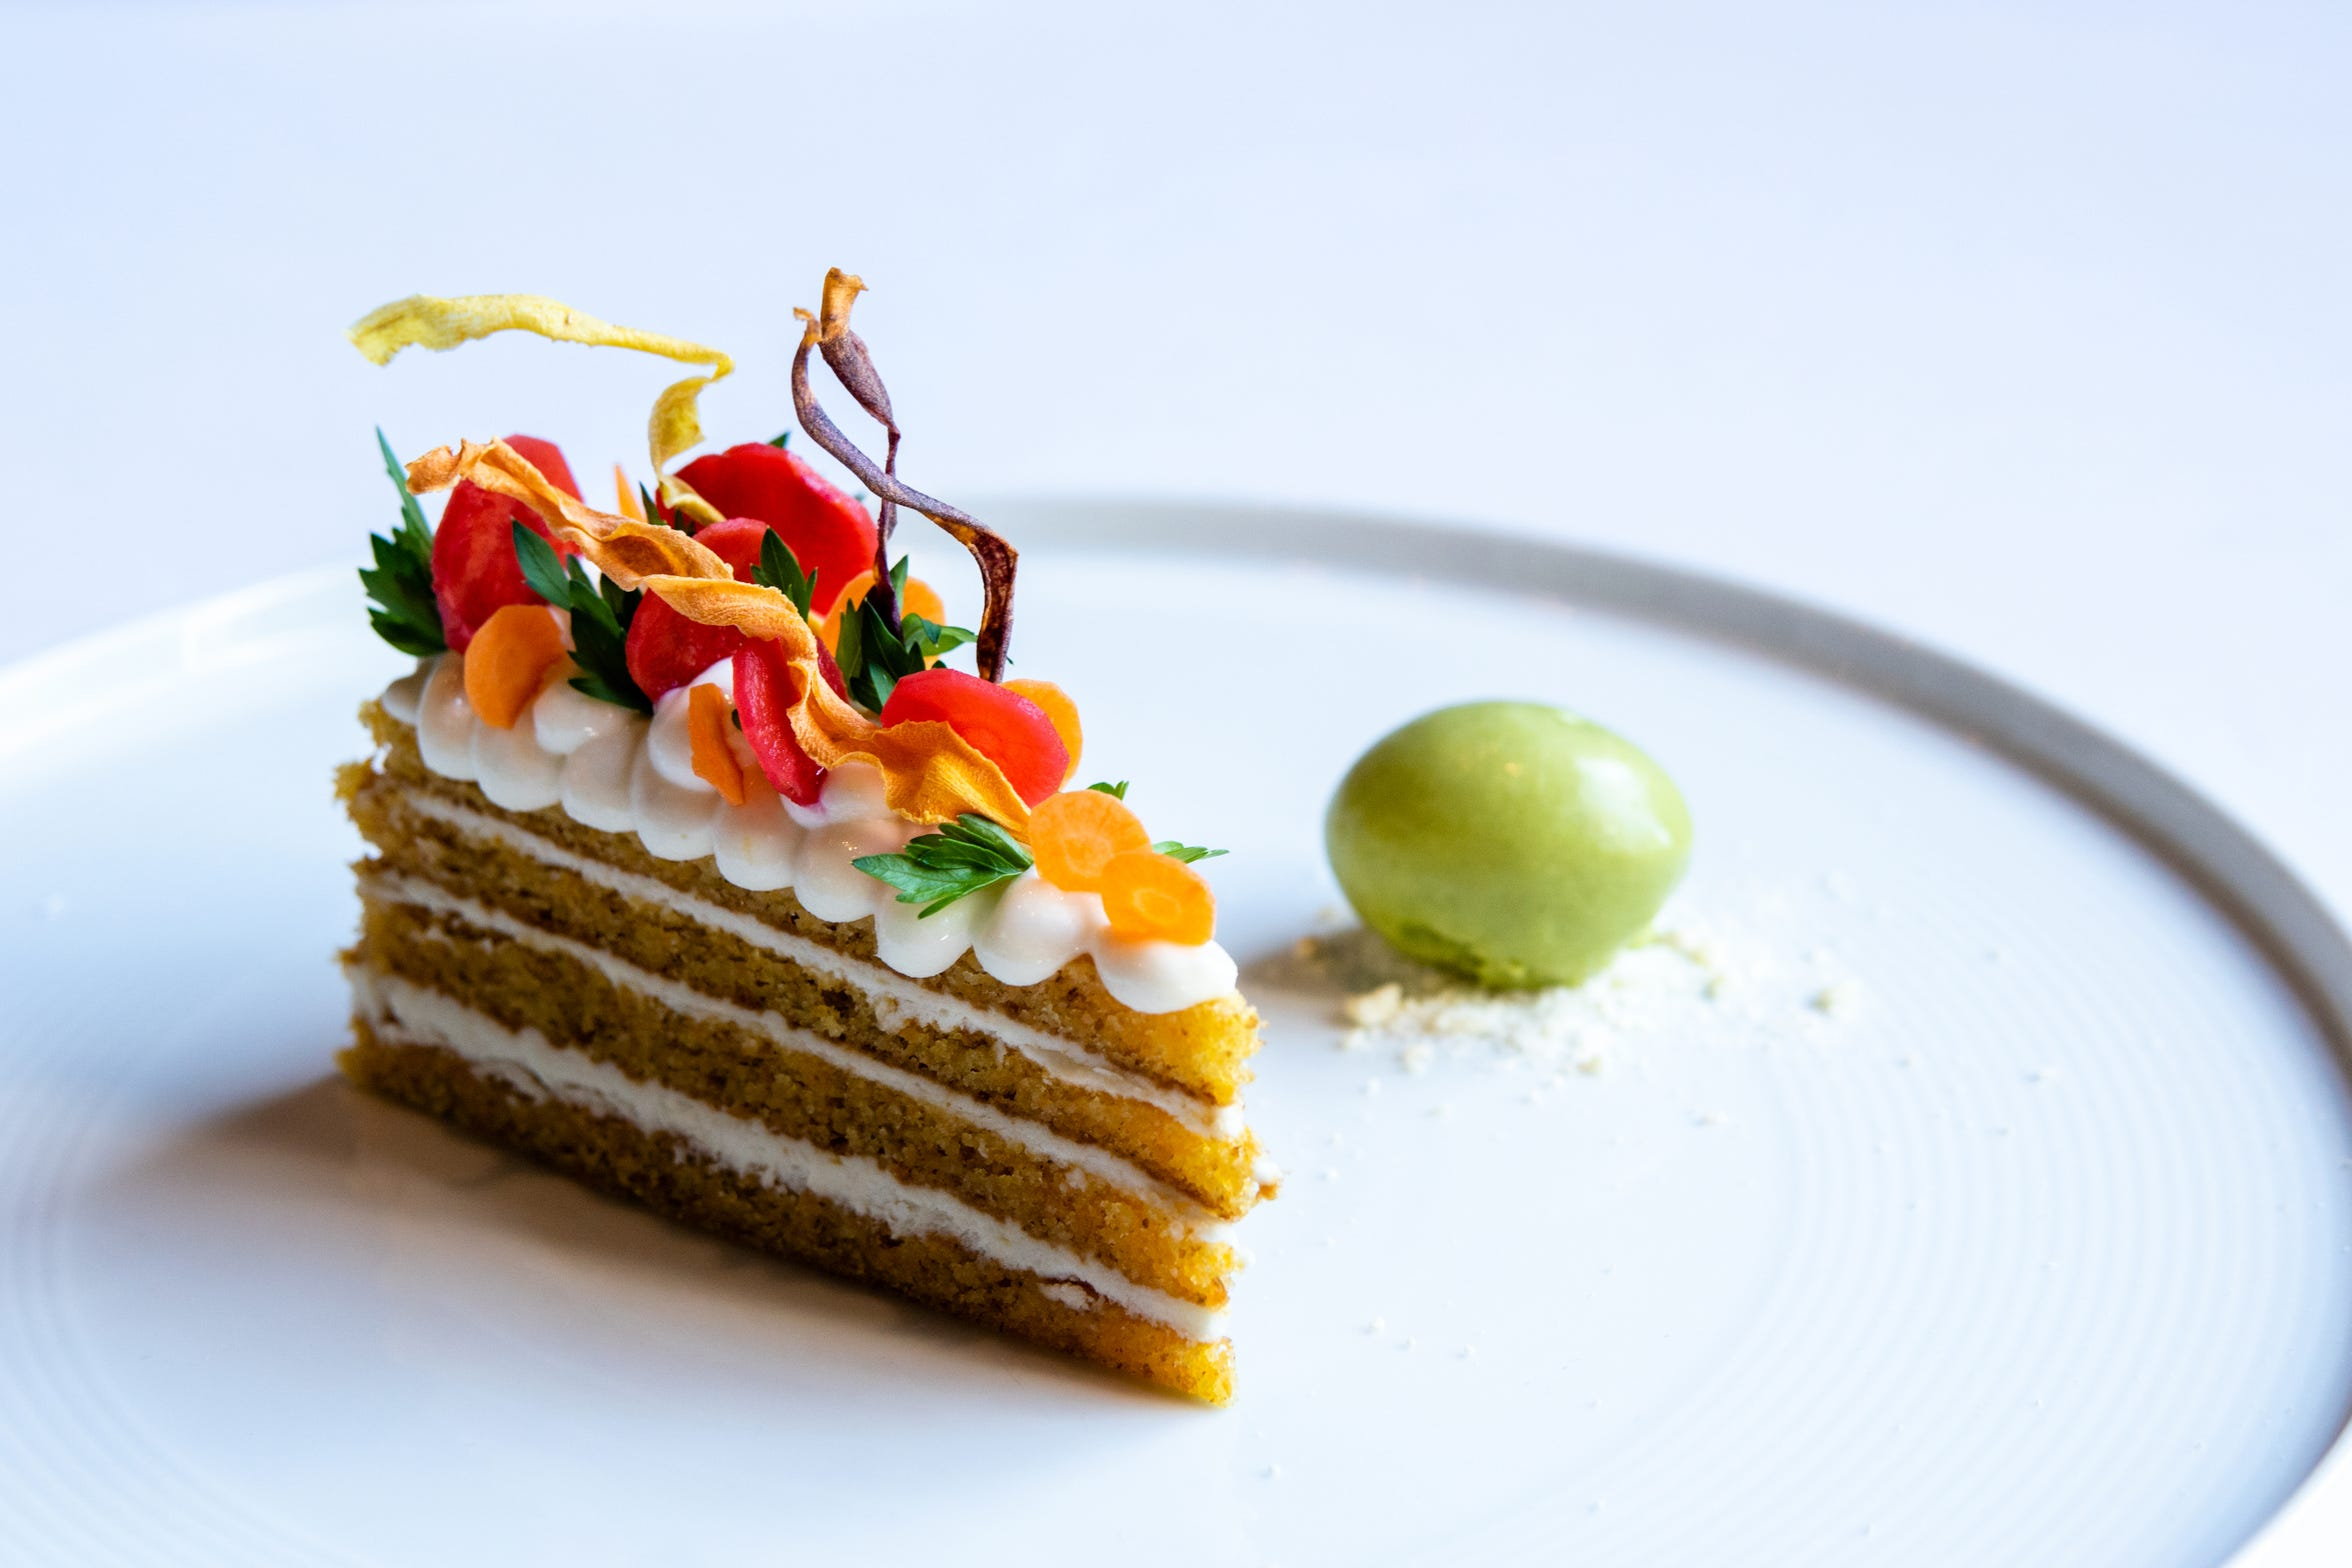 A slice of carrot cake served at Restaurant Eugene, April 18, 2018.